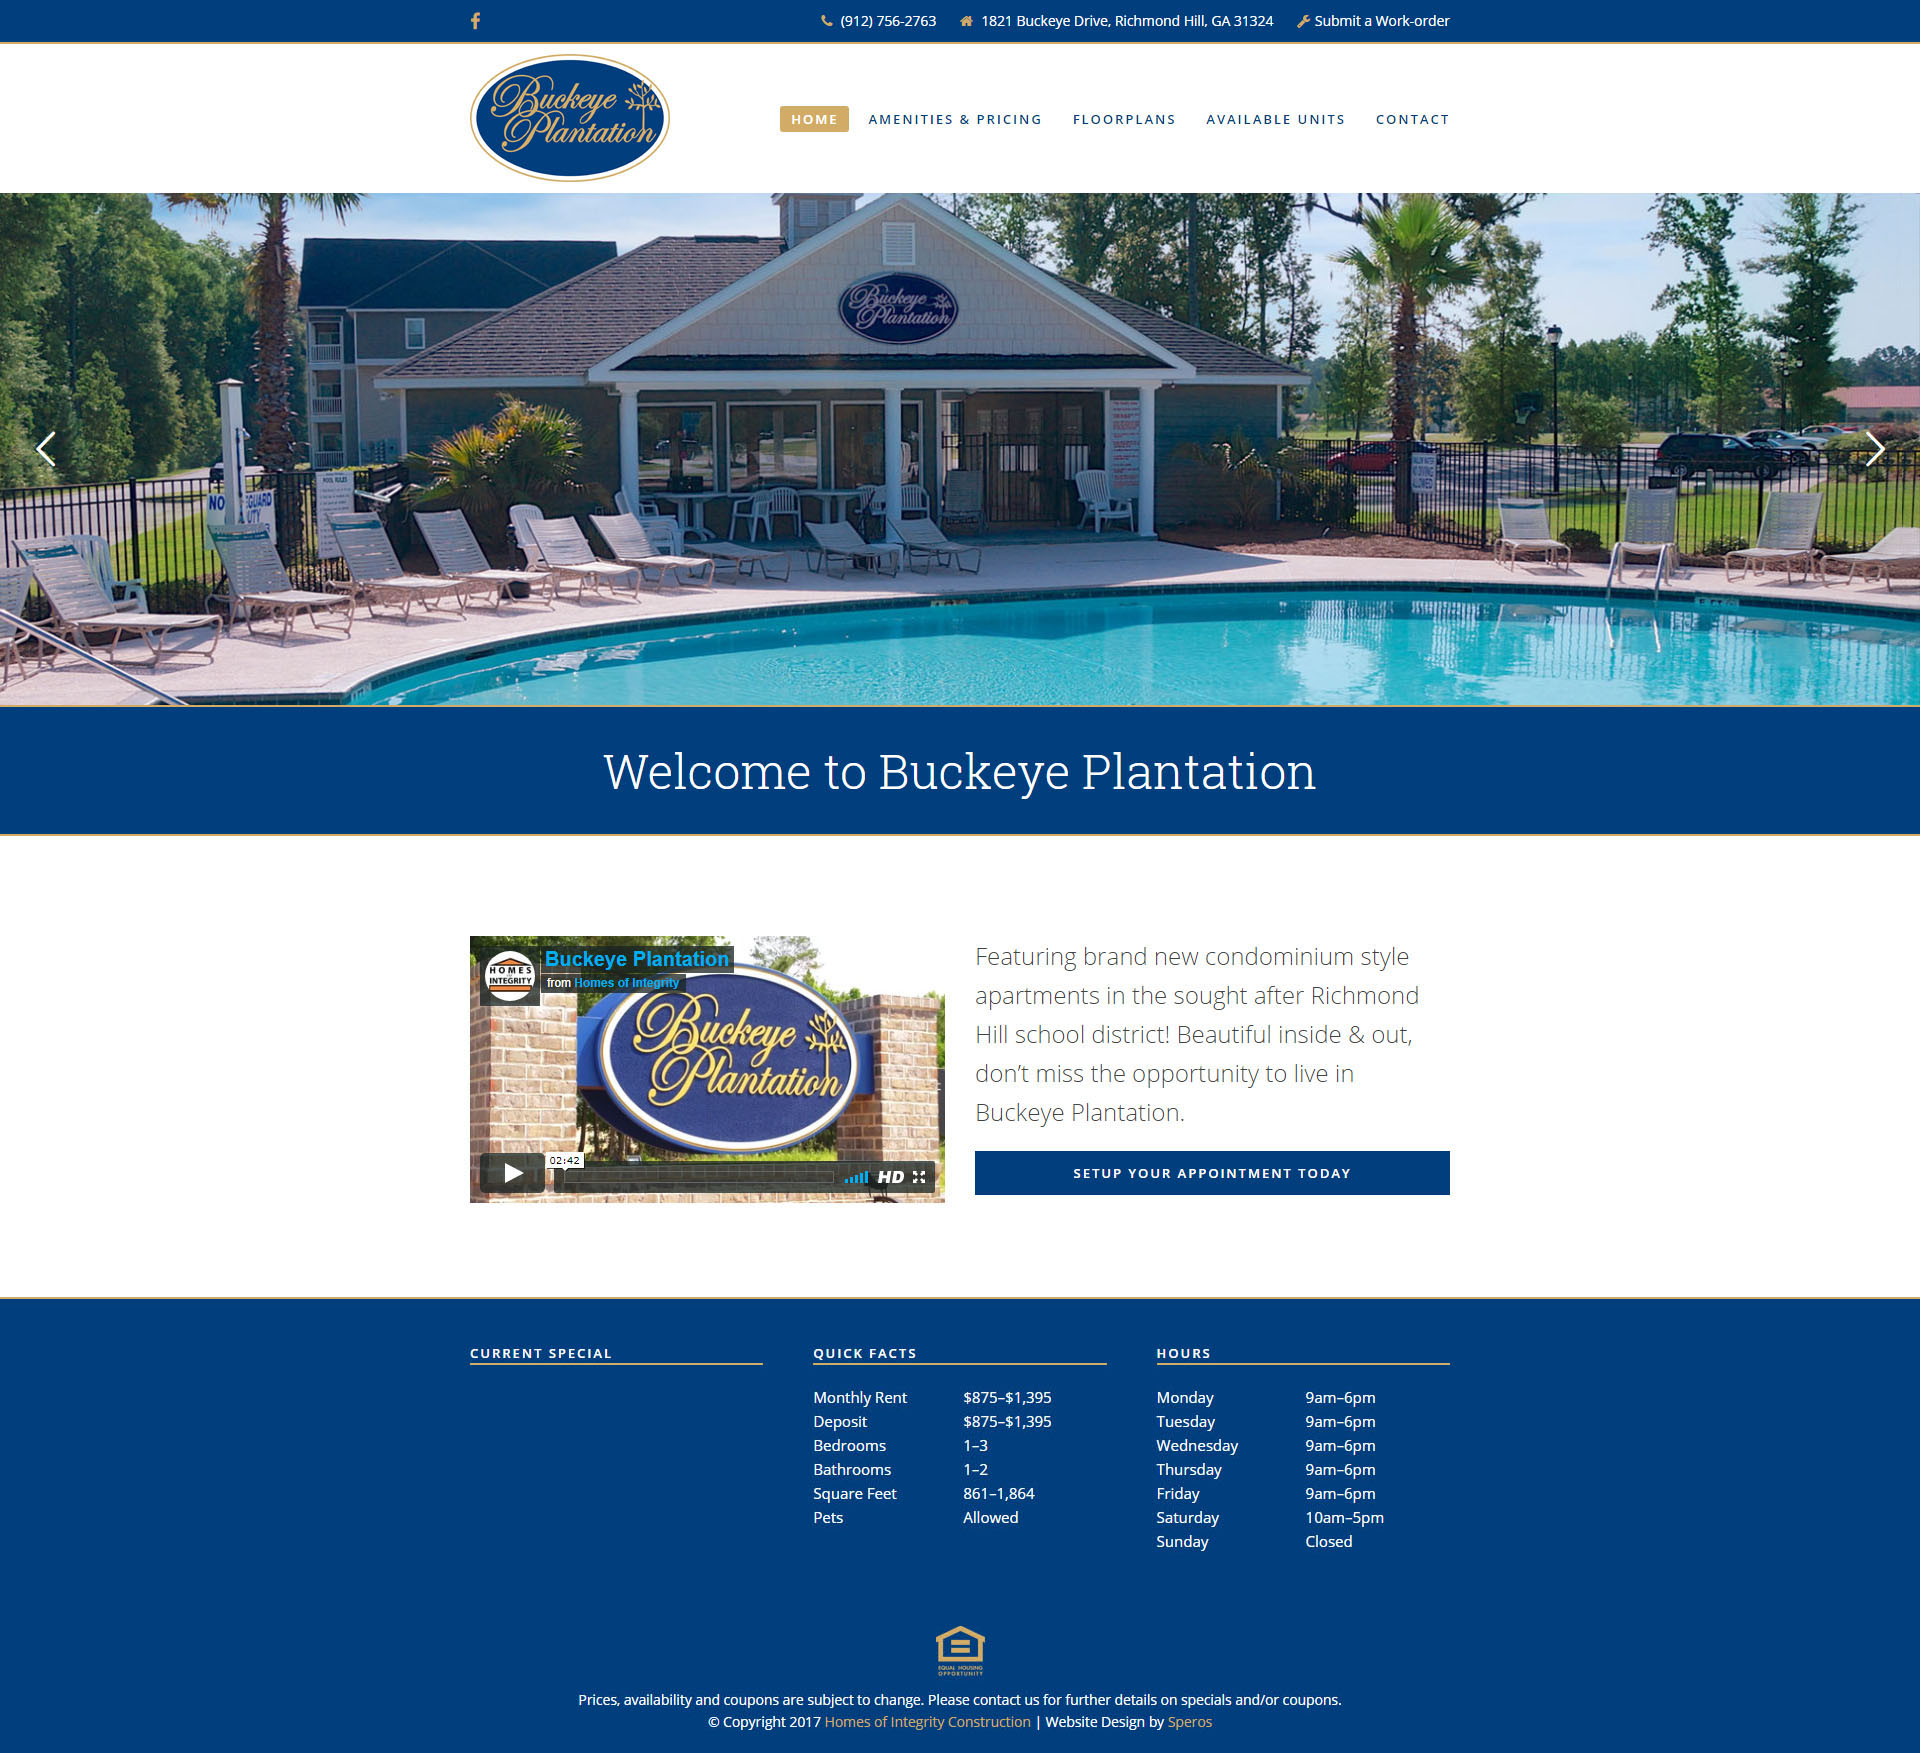 Buckeye Plantation Website Design